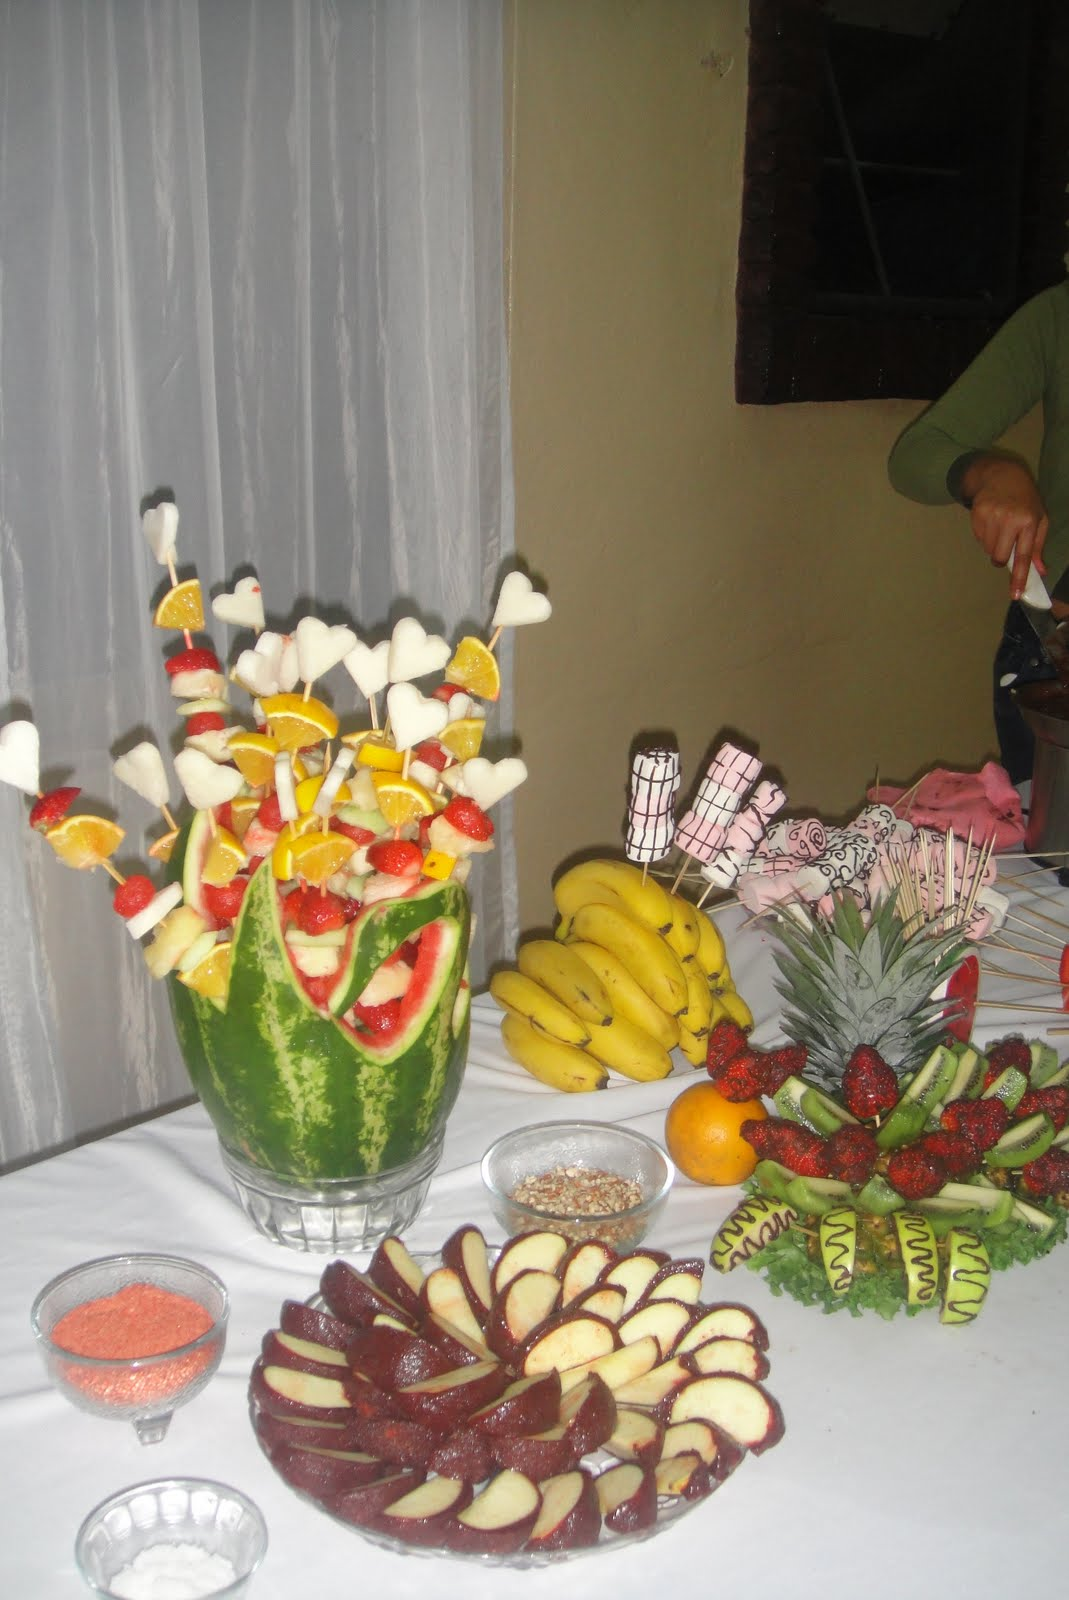 Decoracion frutal fuentes de chocolate y chamoy enero 2011 for Como secar frutas para decoracion